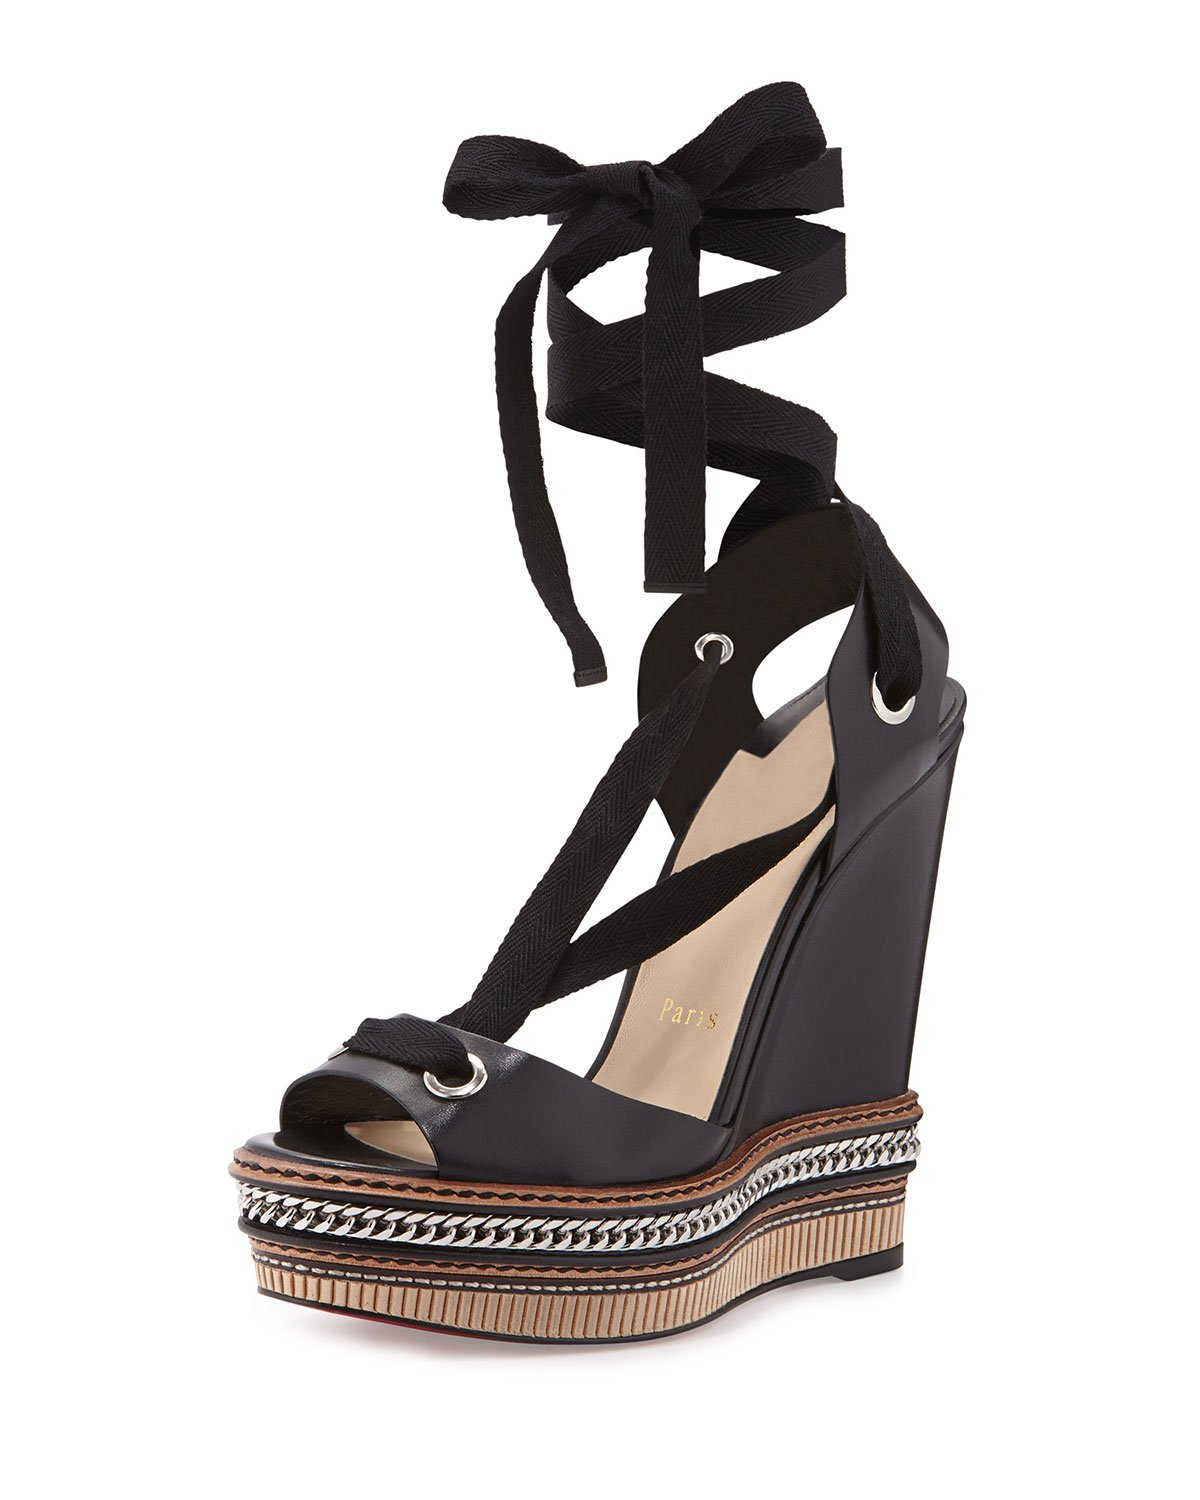 competitive price e17f8 7d7c7 Christian Louboutin Black Tribuli Lace-up Red Sole Wedge Sandal